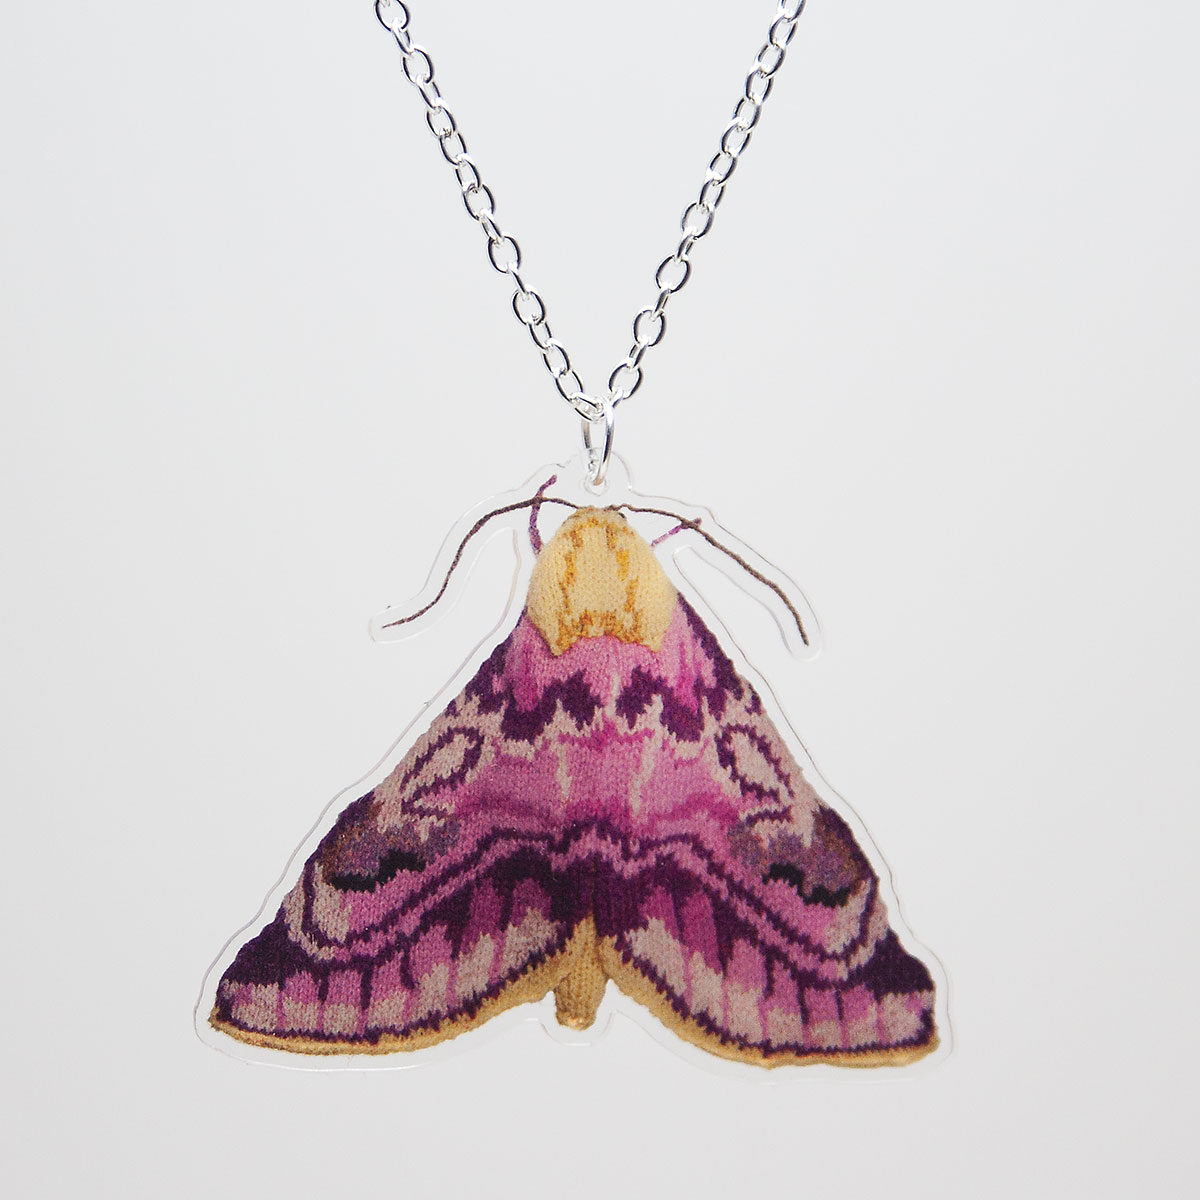 Pease Blossom Moth Necklace